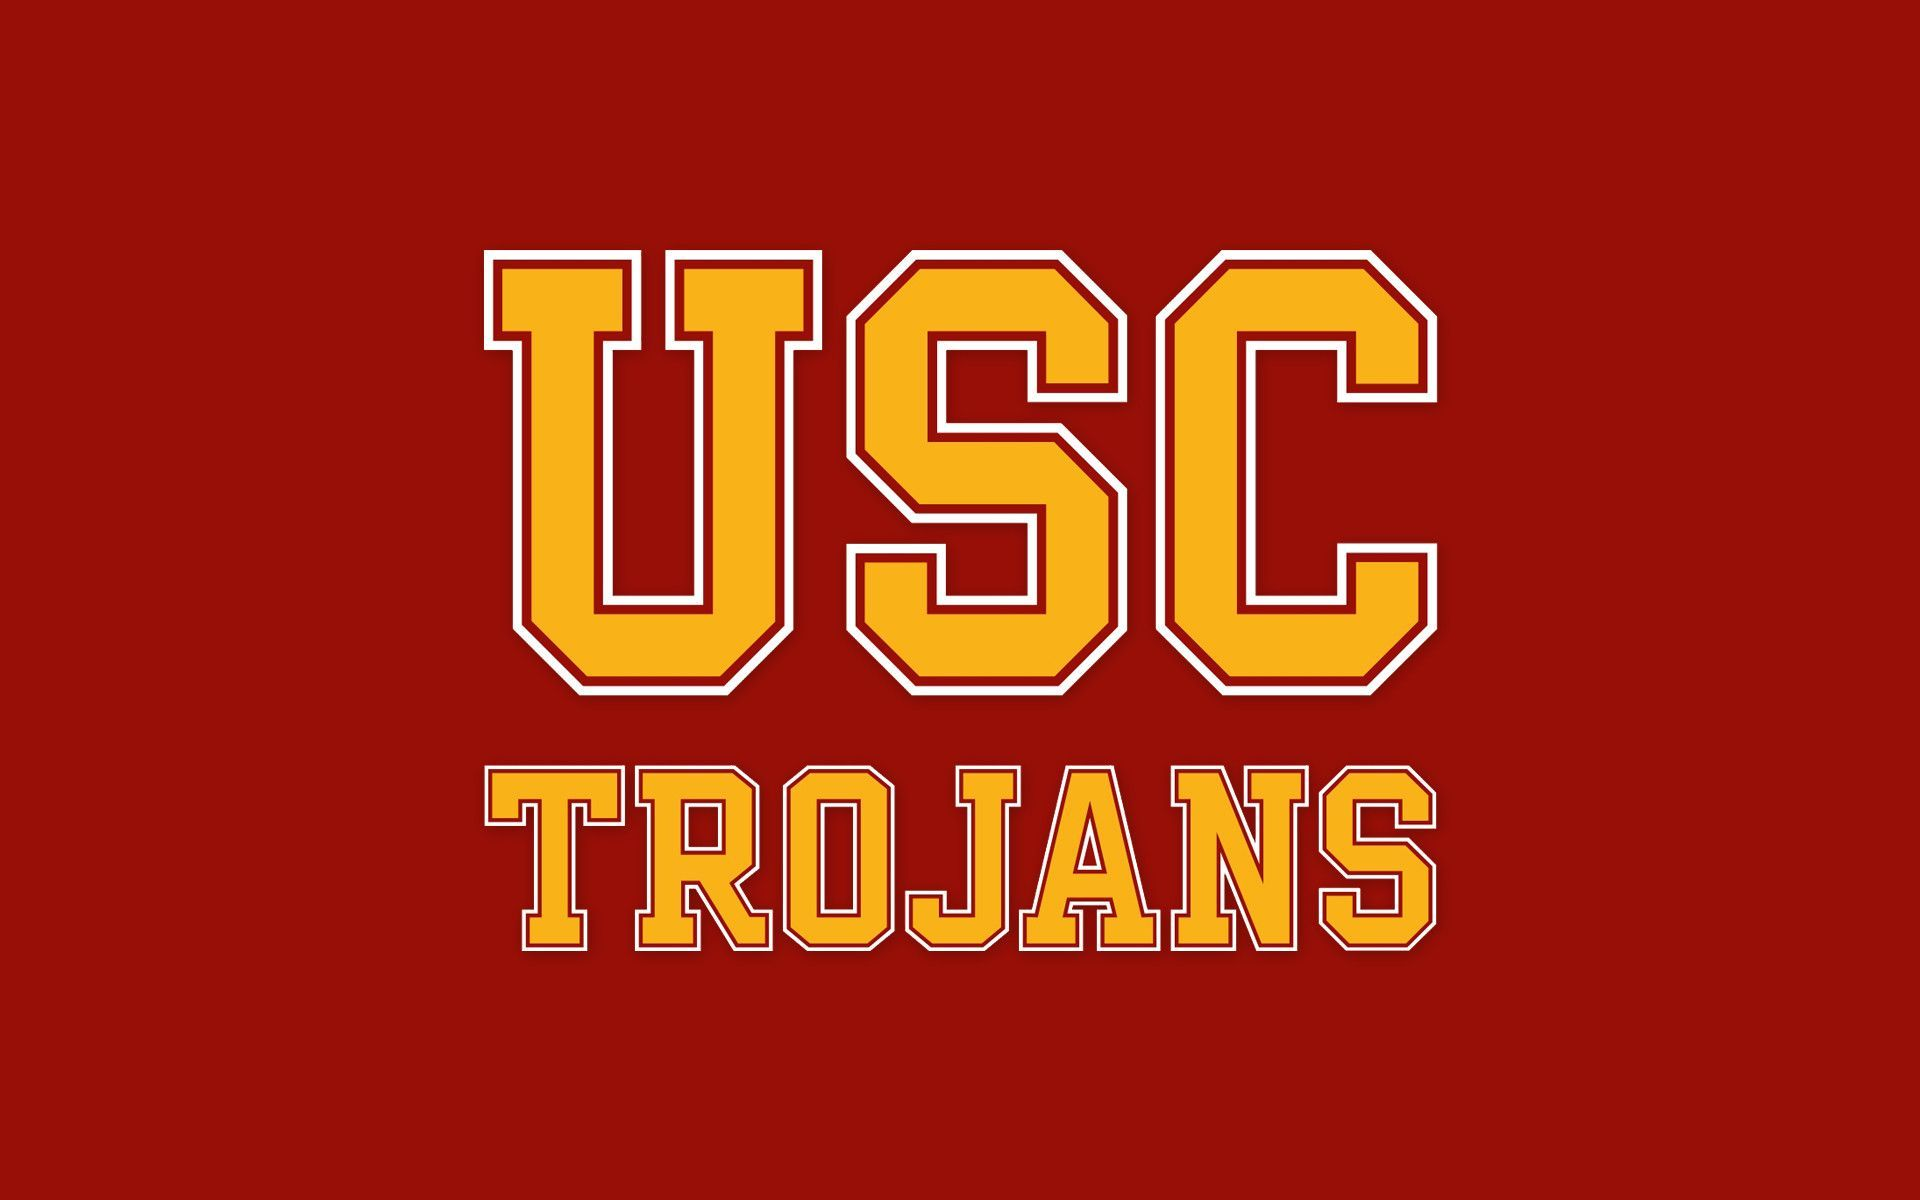 Free Best Quotes Wallpapers Download Usc Trojans Wallpaper Gallery